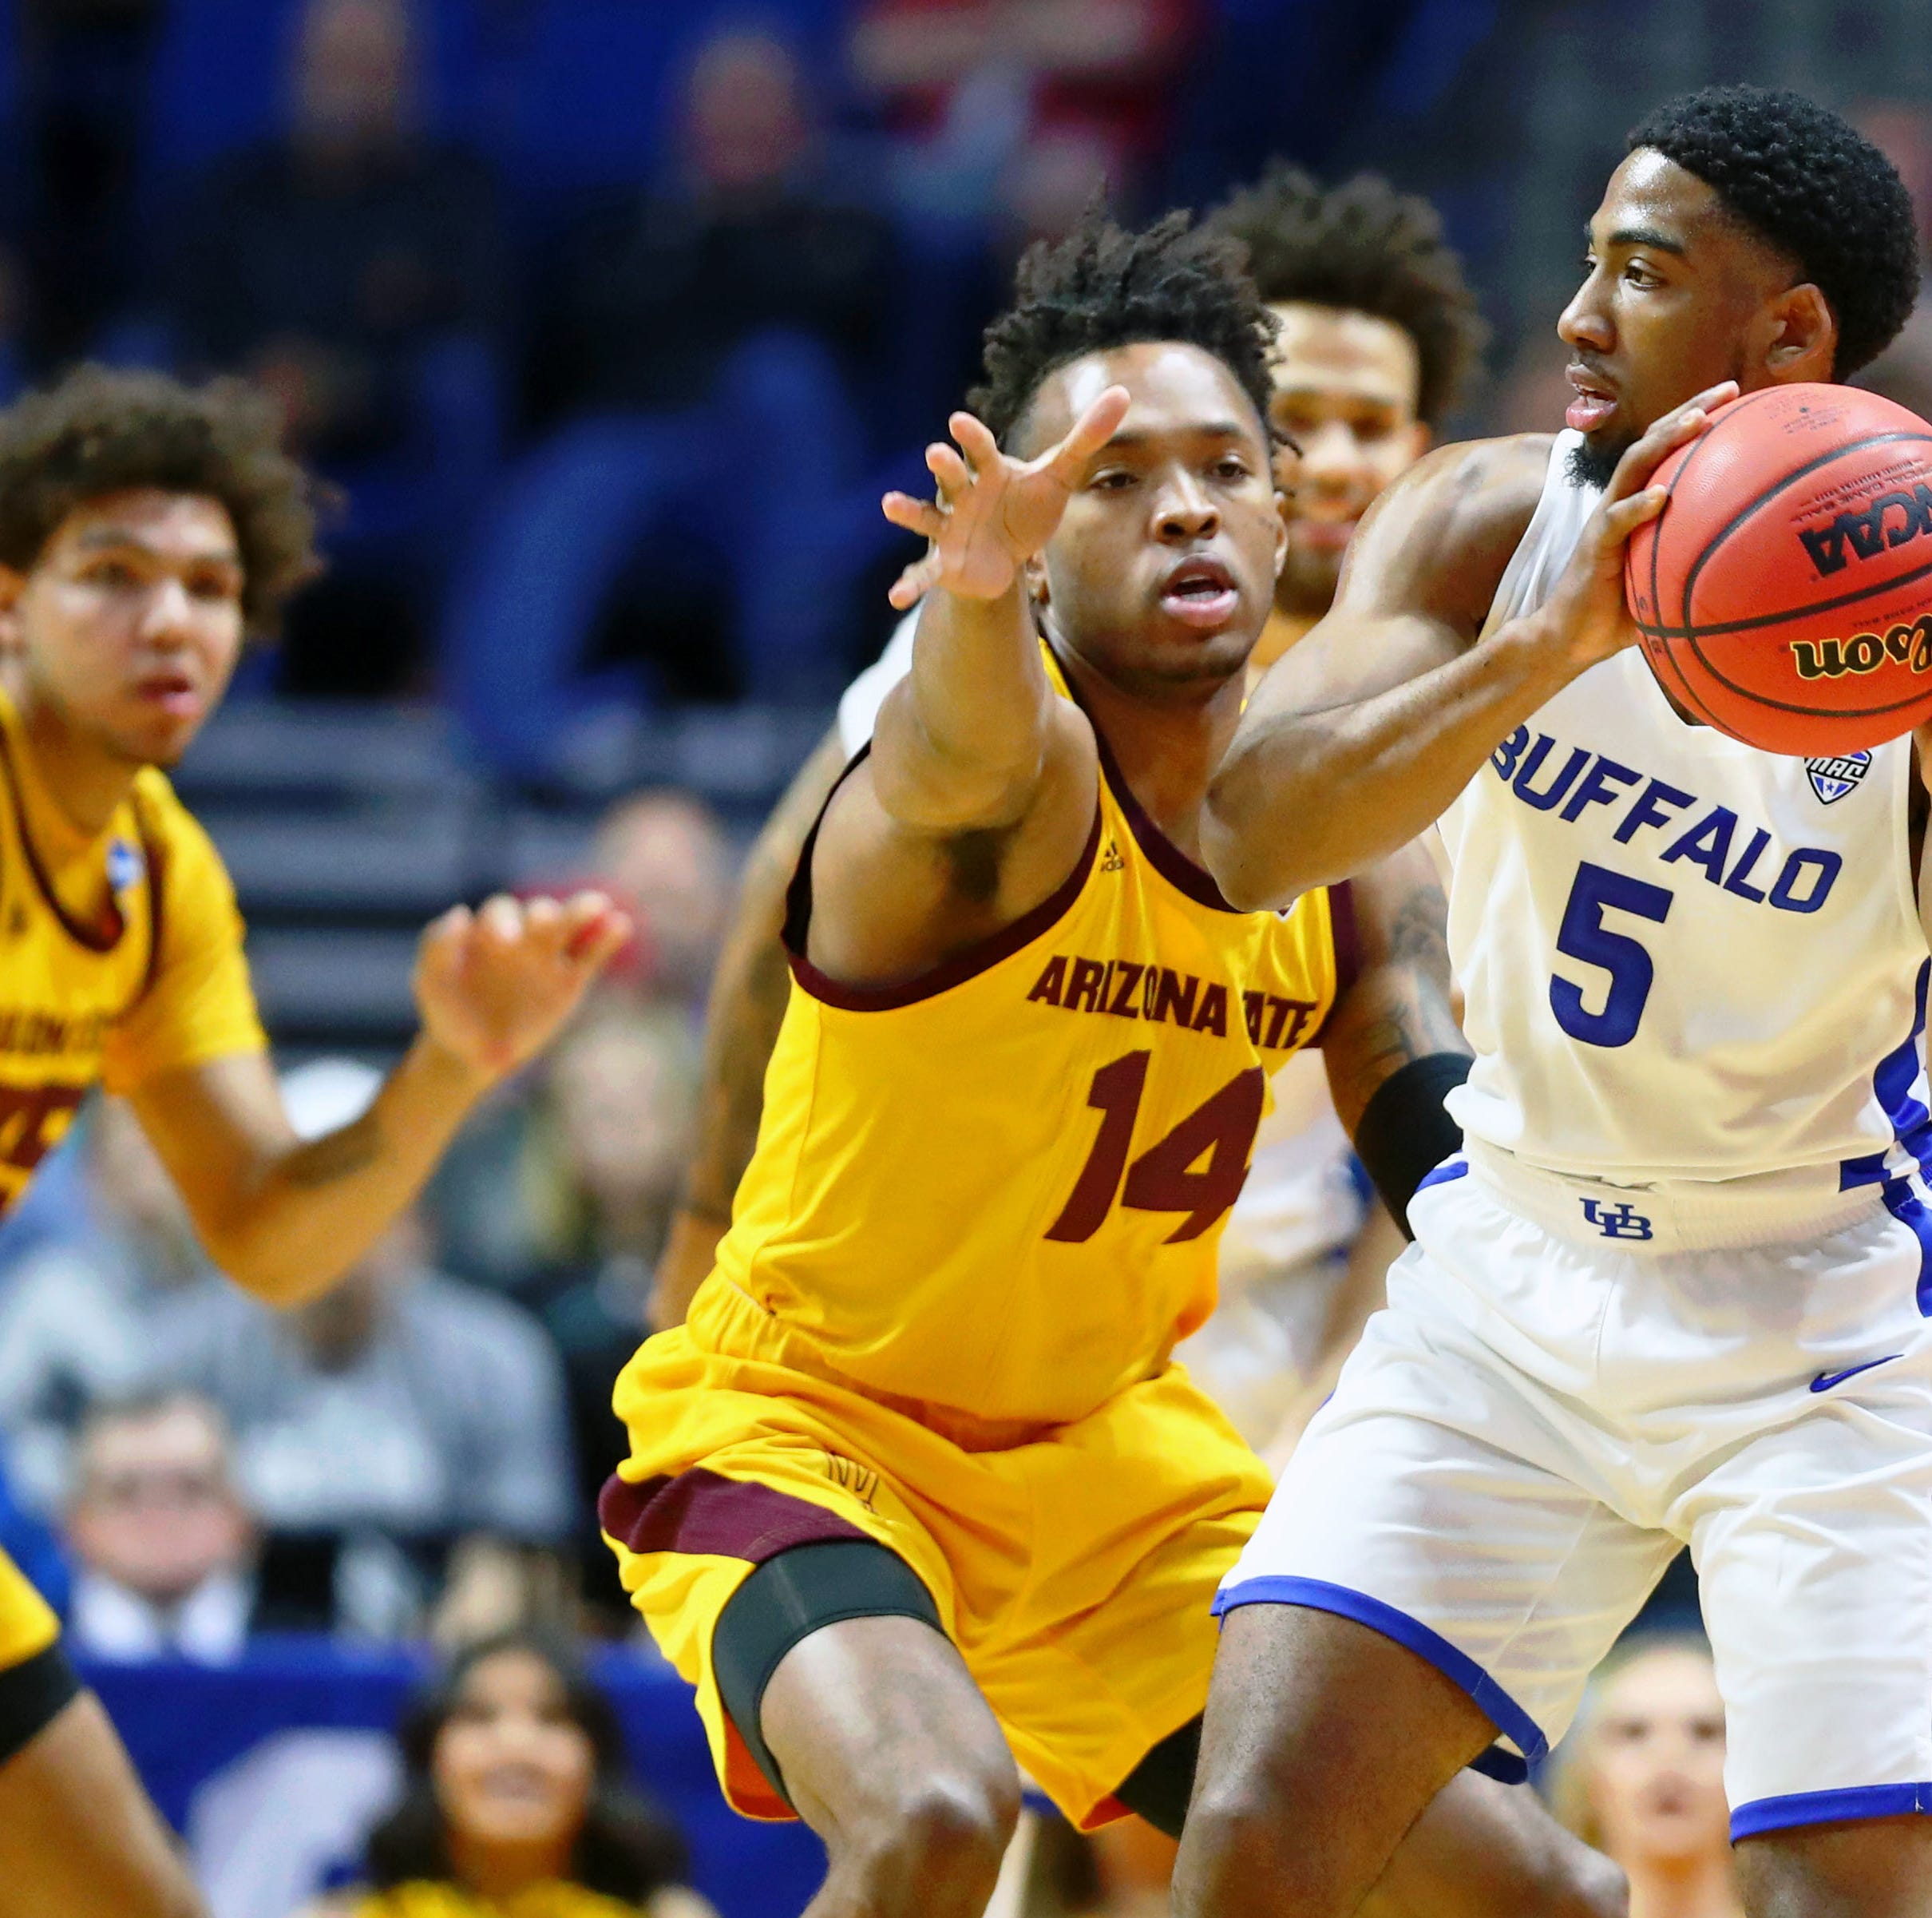 ASU's NCAA tournament loss wasn't just bad, it was AWFUL TV